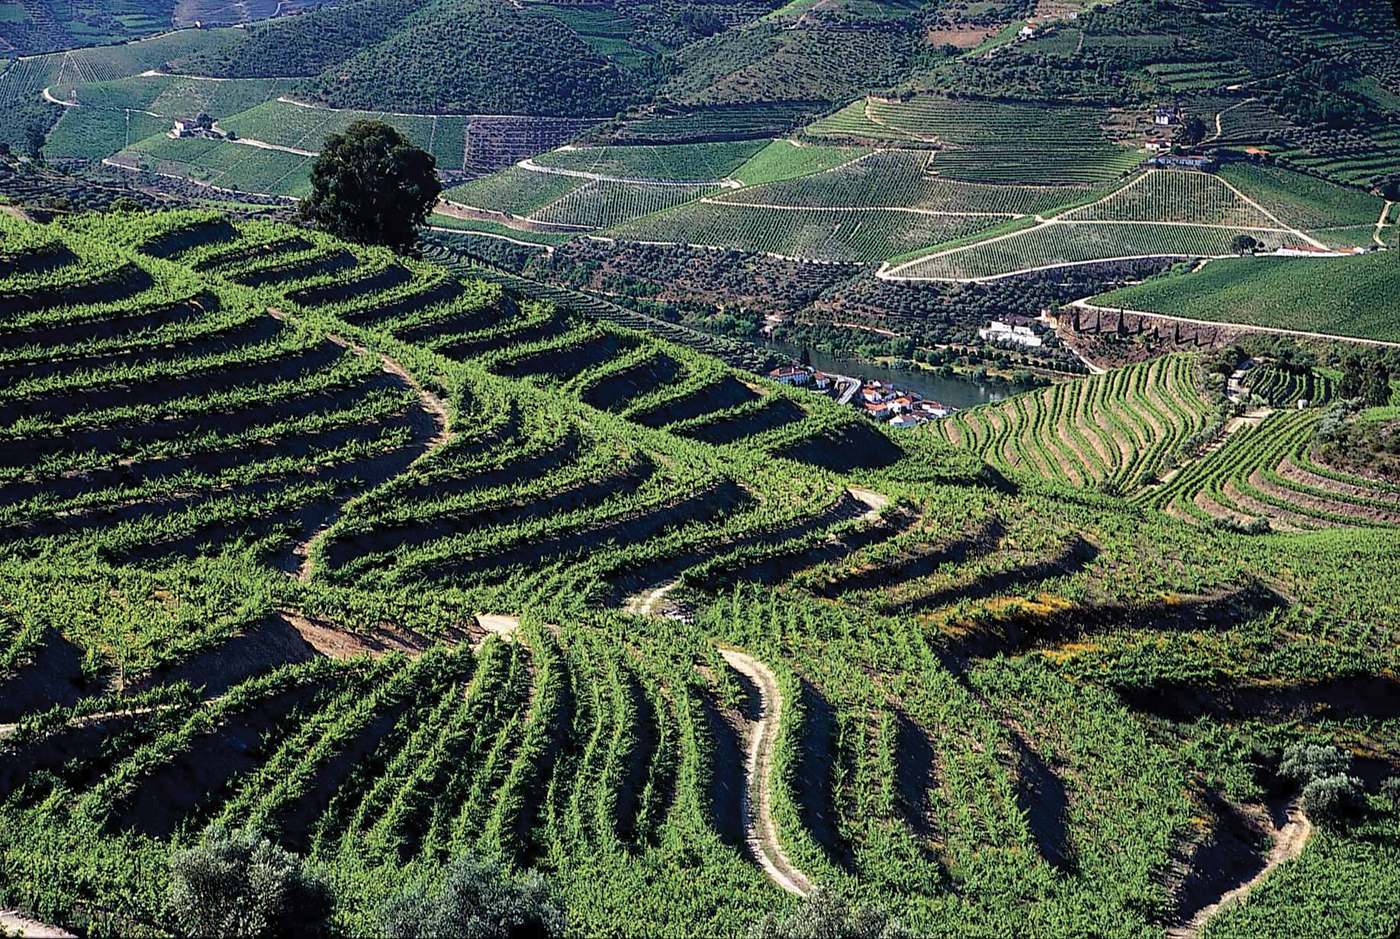 m13-tchin-malvedos-terraced-vineyards